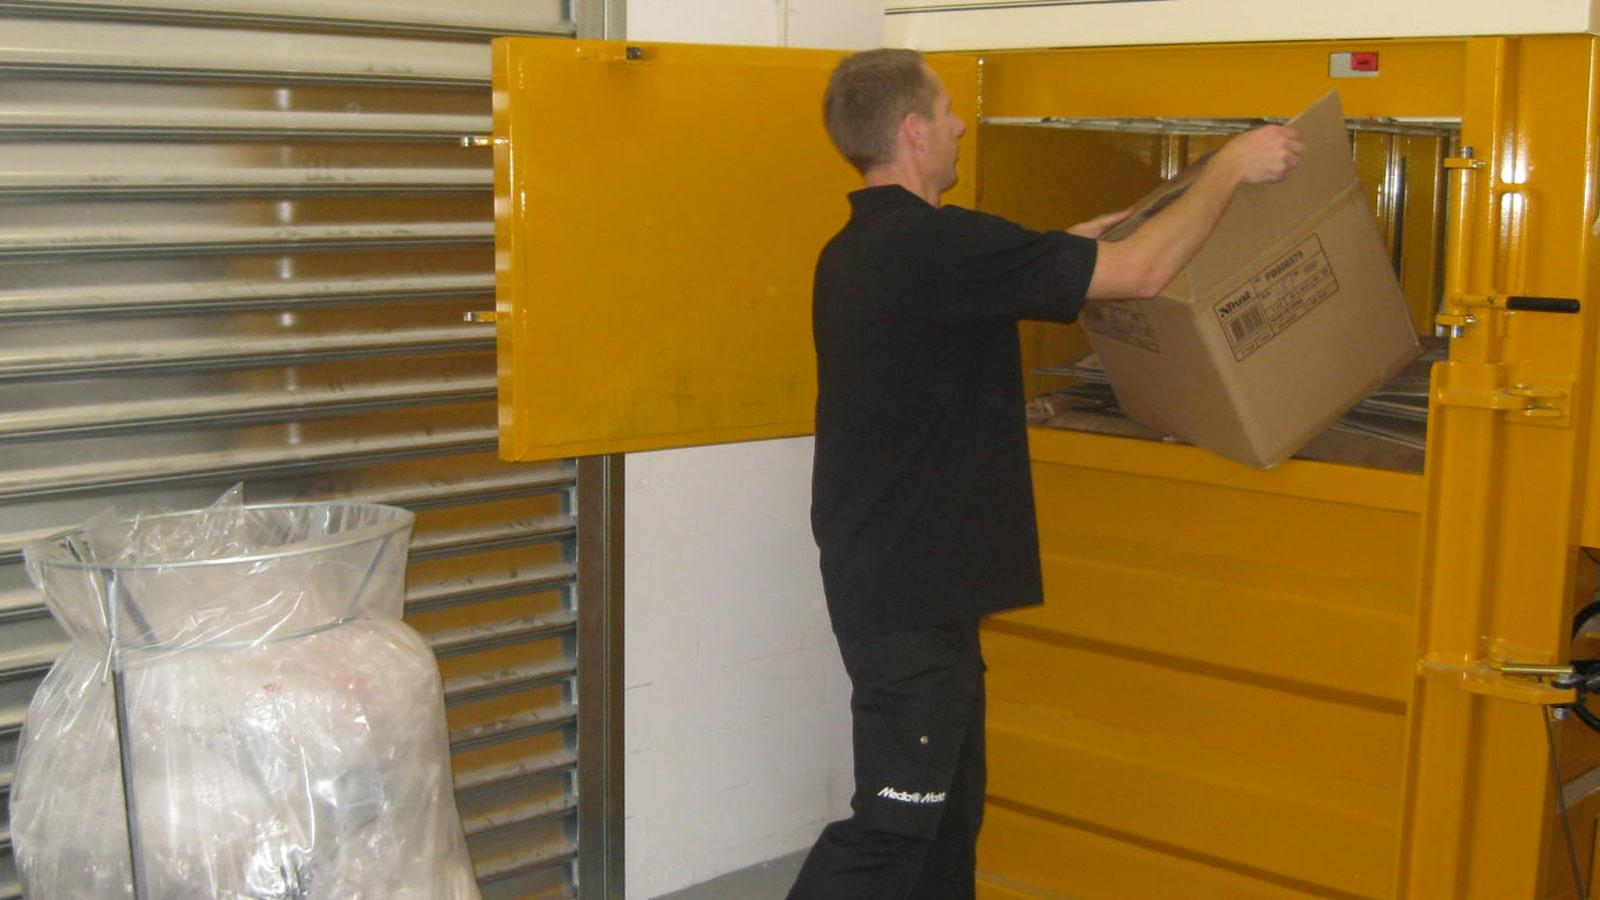 Man from Media Markt throws cardboard boxes into Bramidan baler